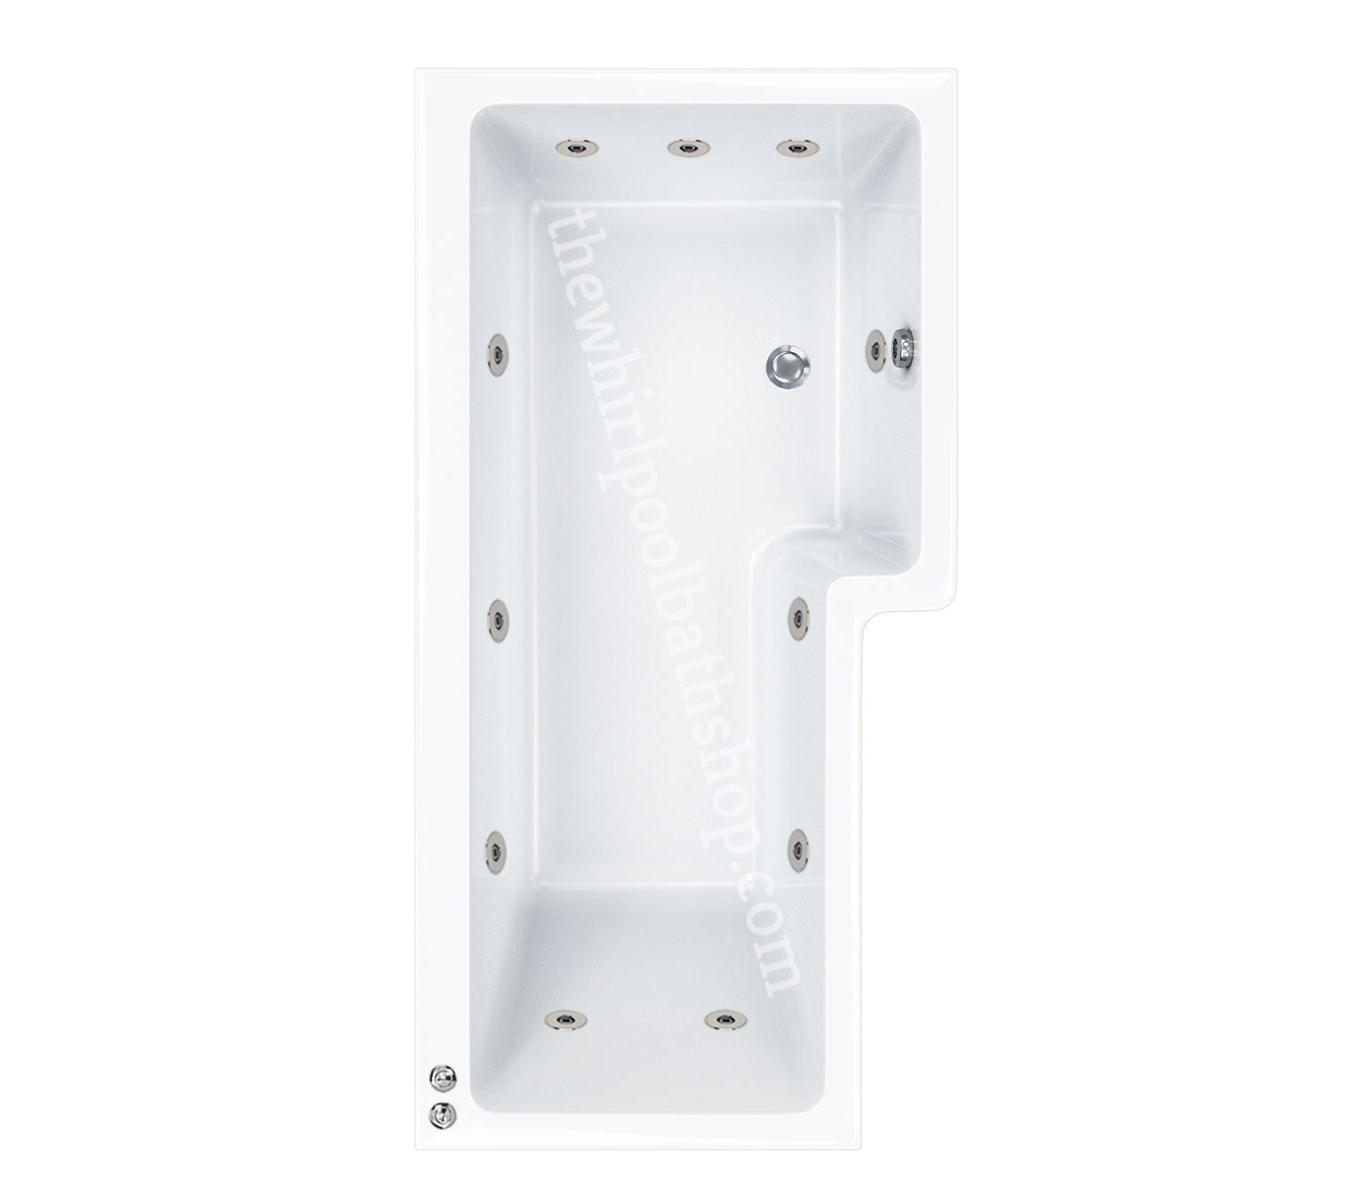 11 jet RH Carron 1700 mm Quantum L Shape Whirlpool Shower Bath